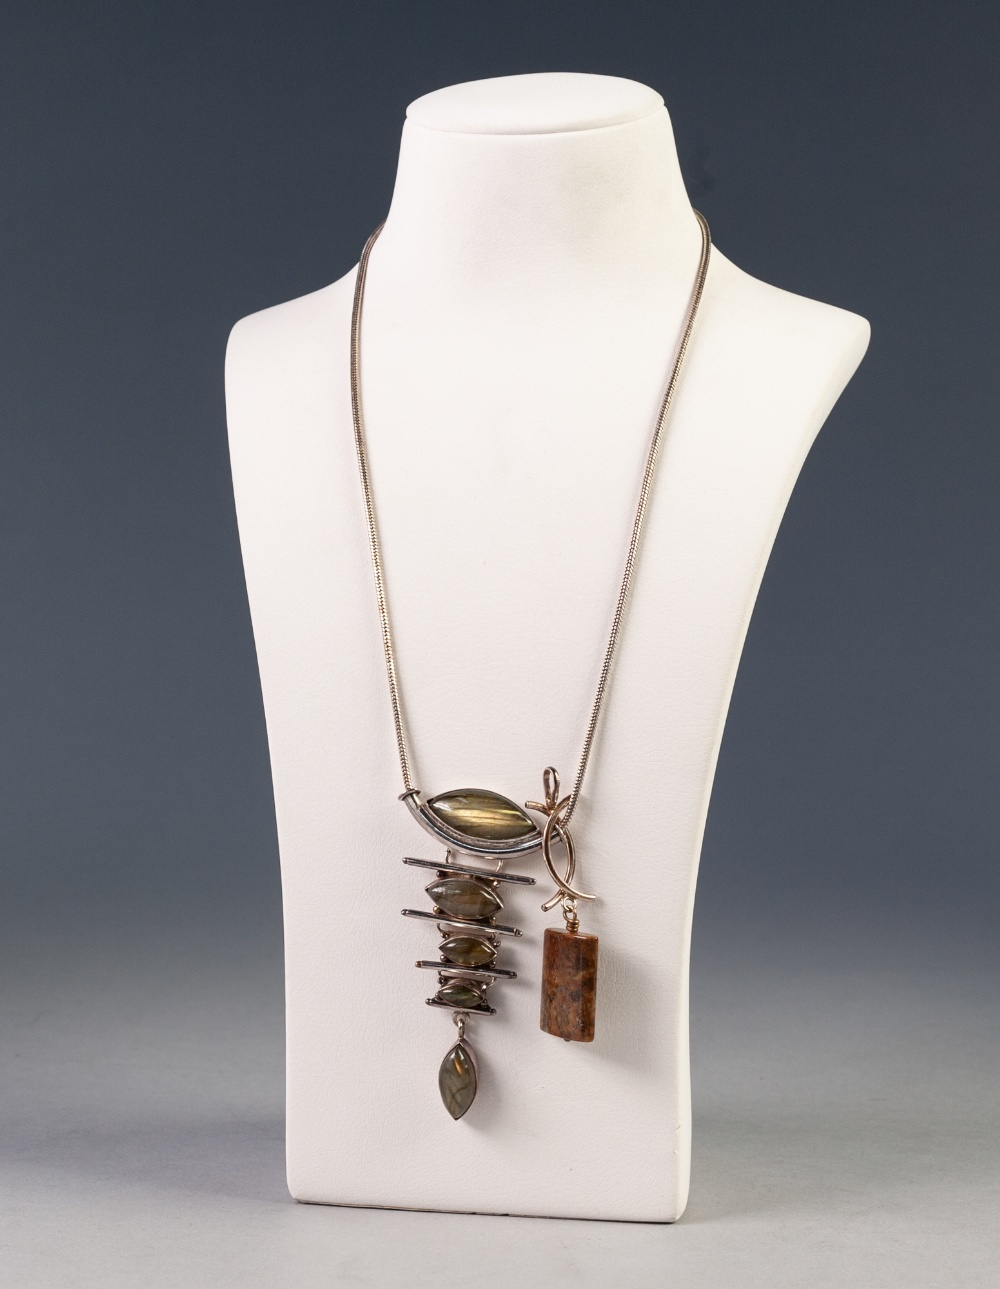 Lot 150 - A MODERN CARL BRIDGEMAN CRAFTED SILVER AND HARDSTONE SET NECKLACE, and ANOTHER SILVER AND